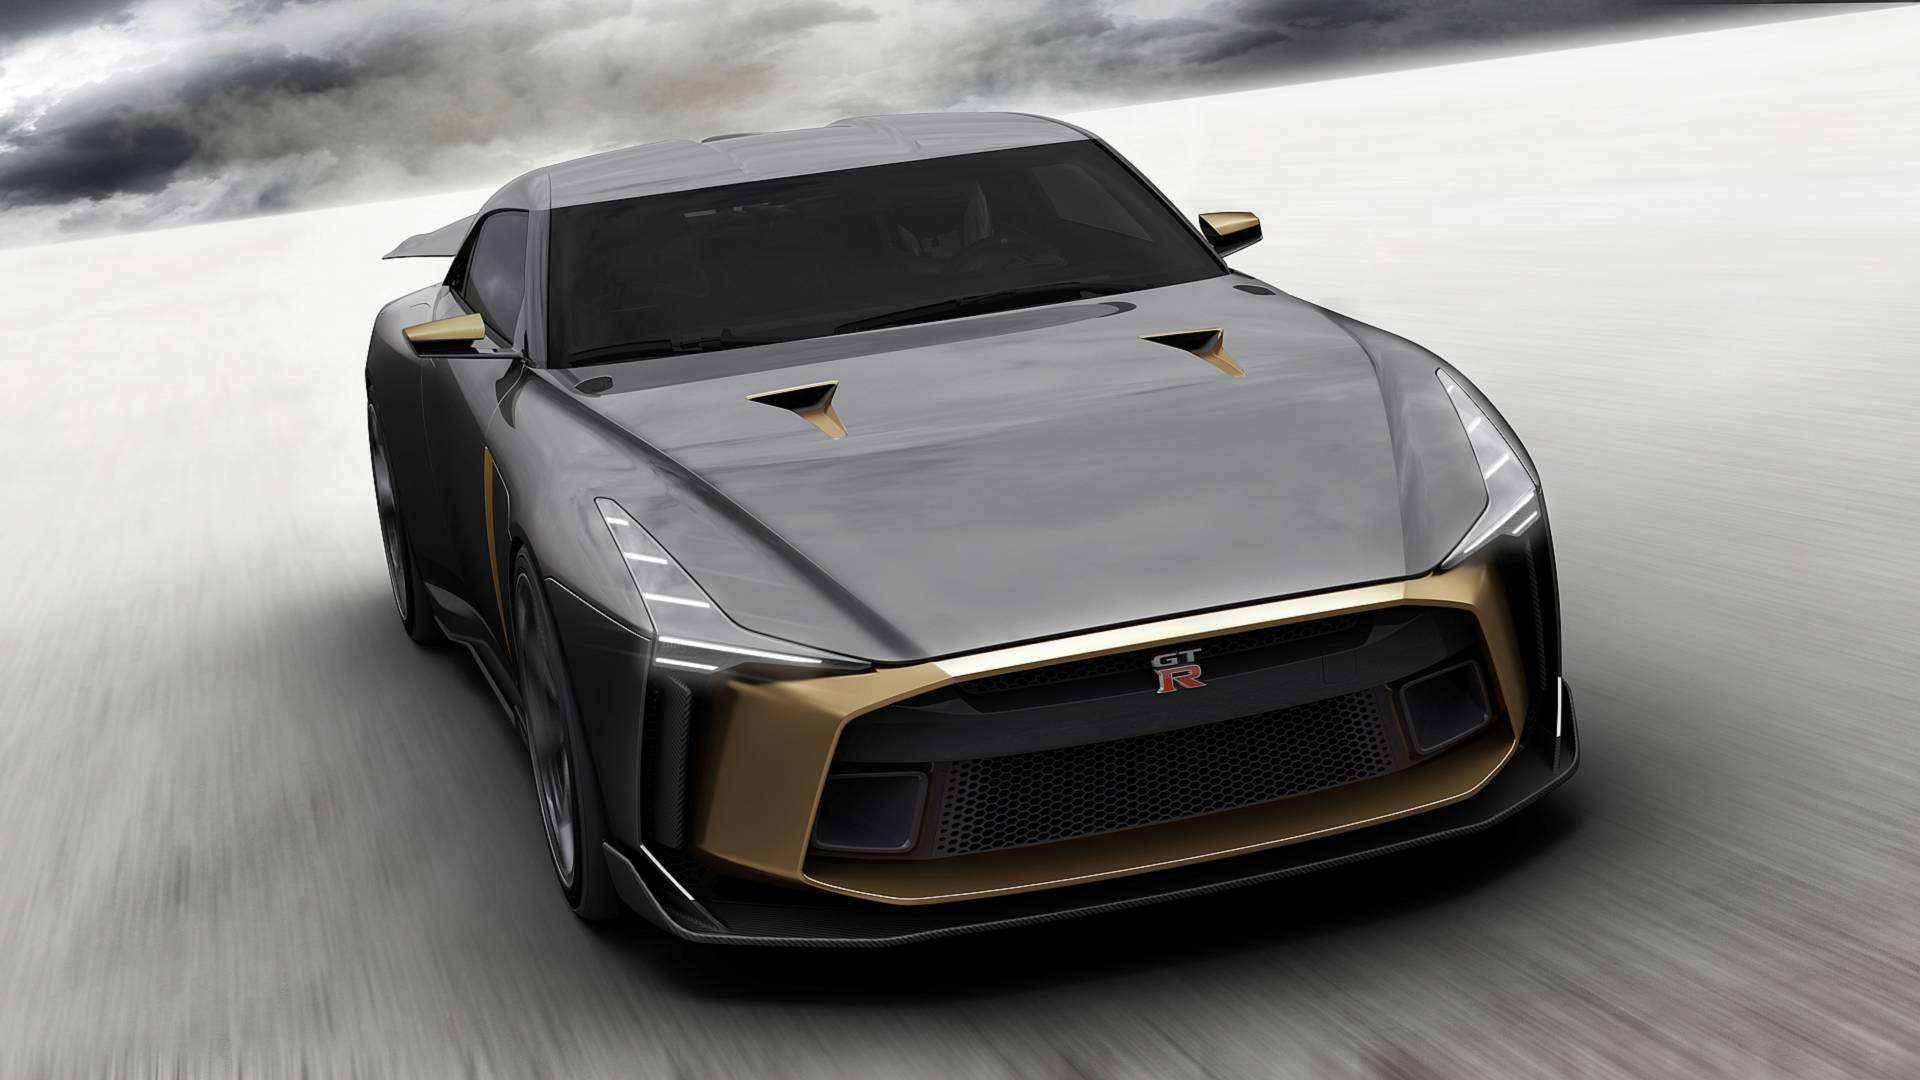 87 Concept of Nissan Skyline 2019 New Concept Review with Nissan Skyline 2019 New Concept